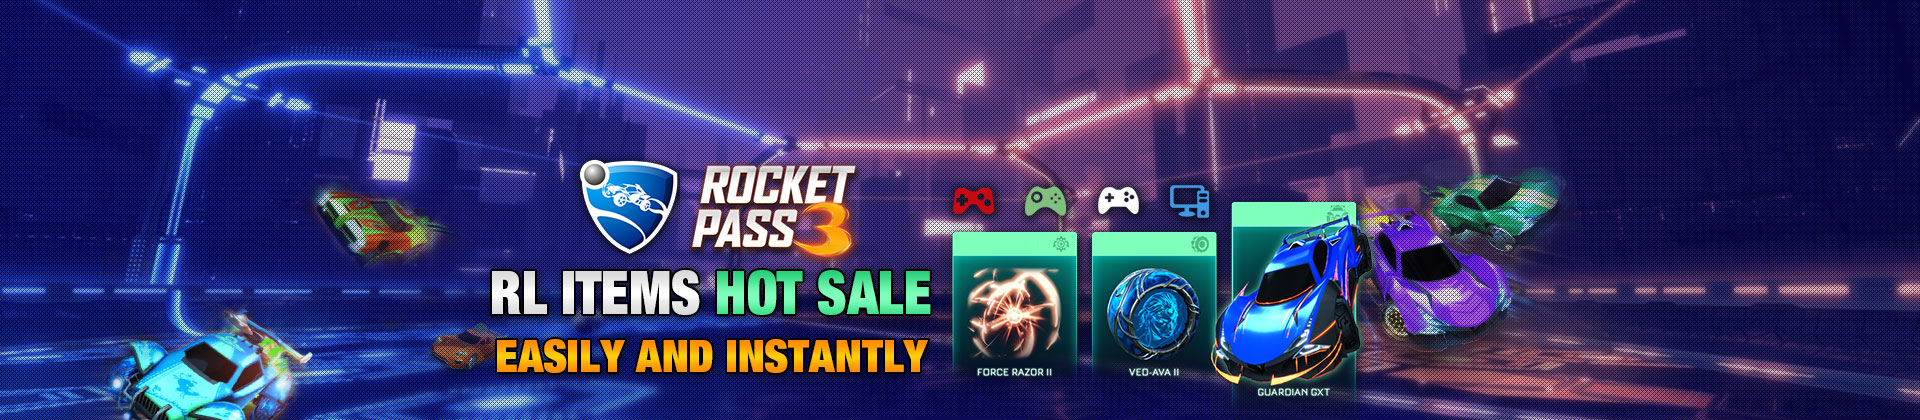 Buy Rocket League Rocket Pass 3 Items On RocketPrices